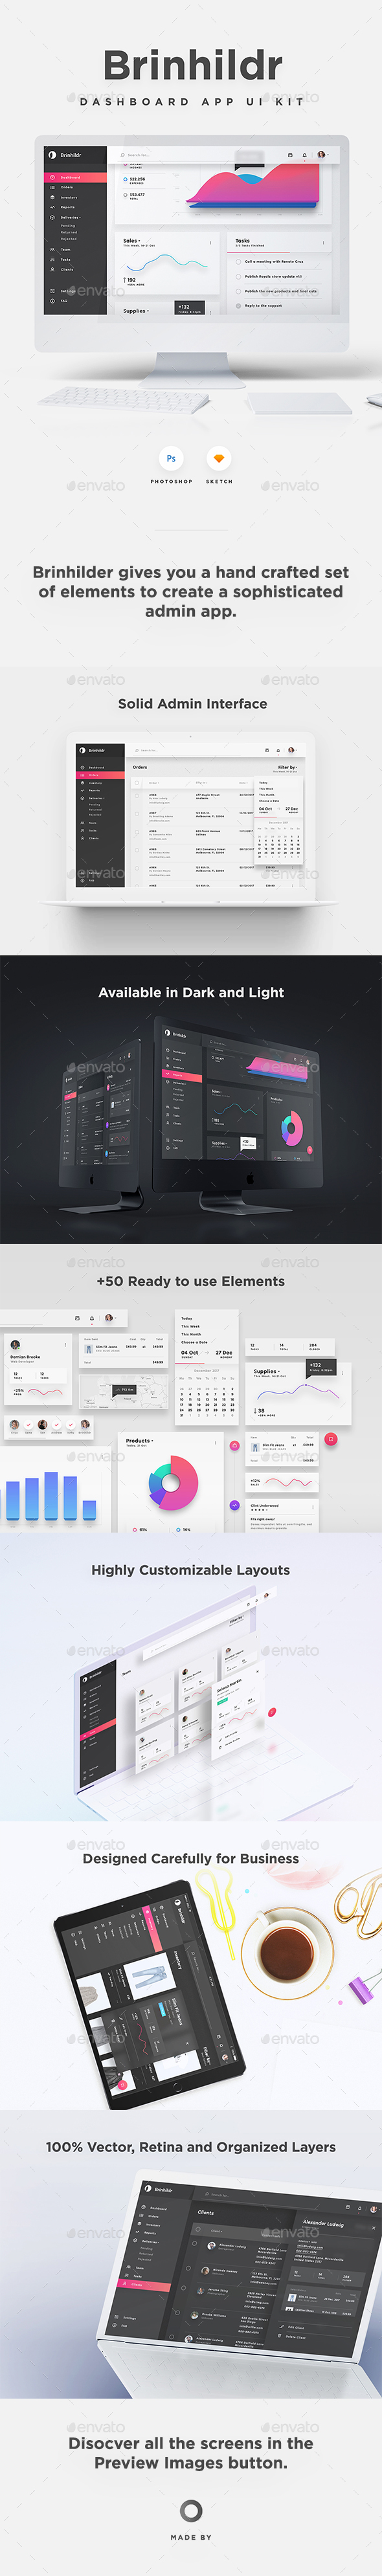 GraphicRiver Brinhildr Dashboard Web App UI Kit 21168339